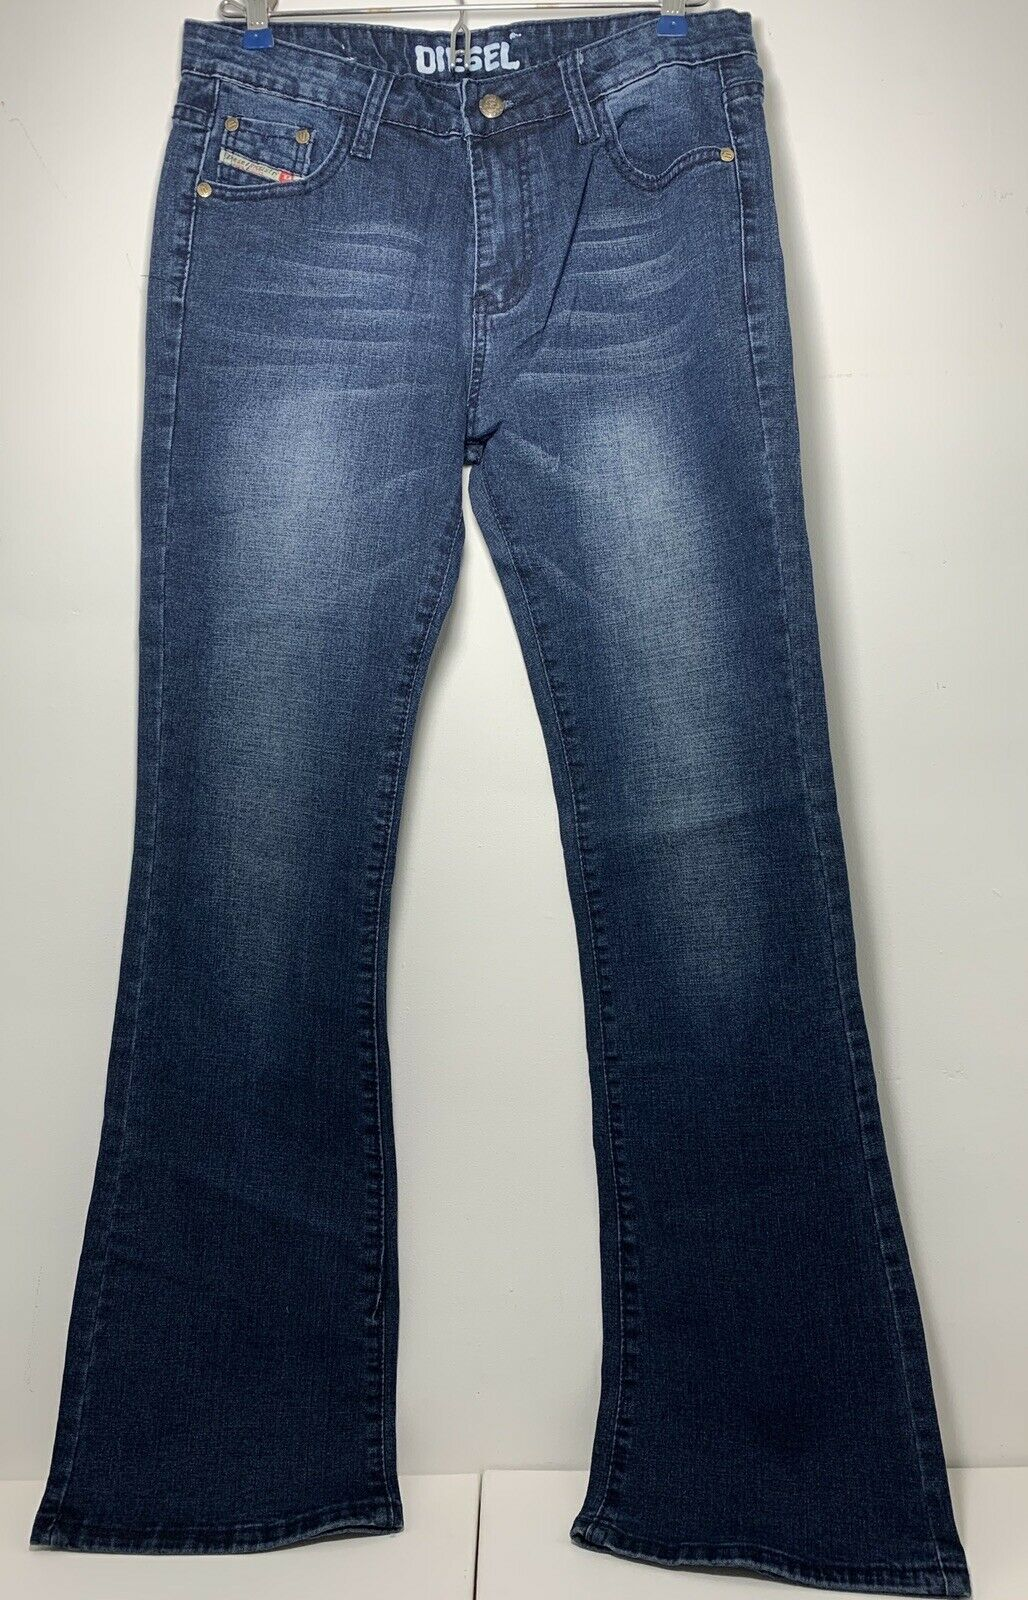 DIESEL Women's Slim Boot Cut Jeans Stretch Wash 30x31